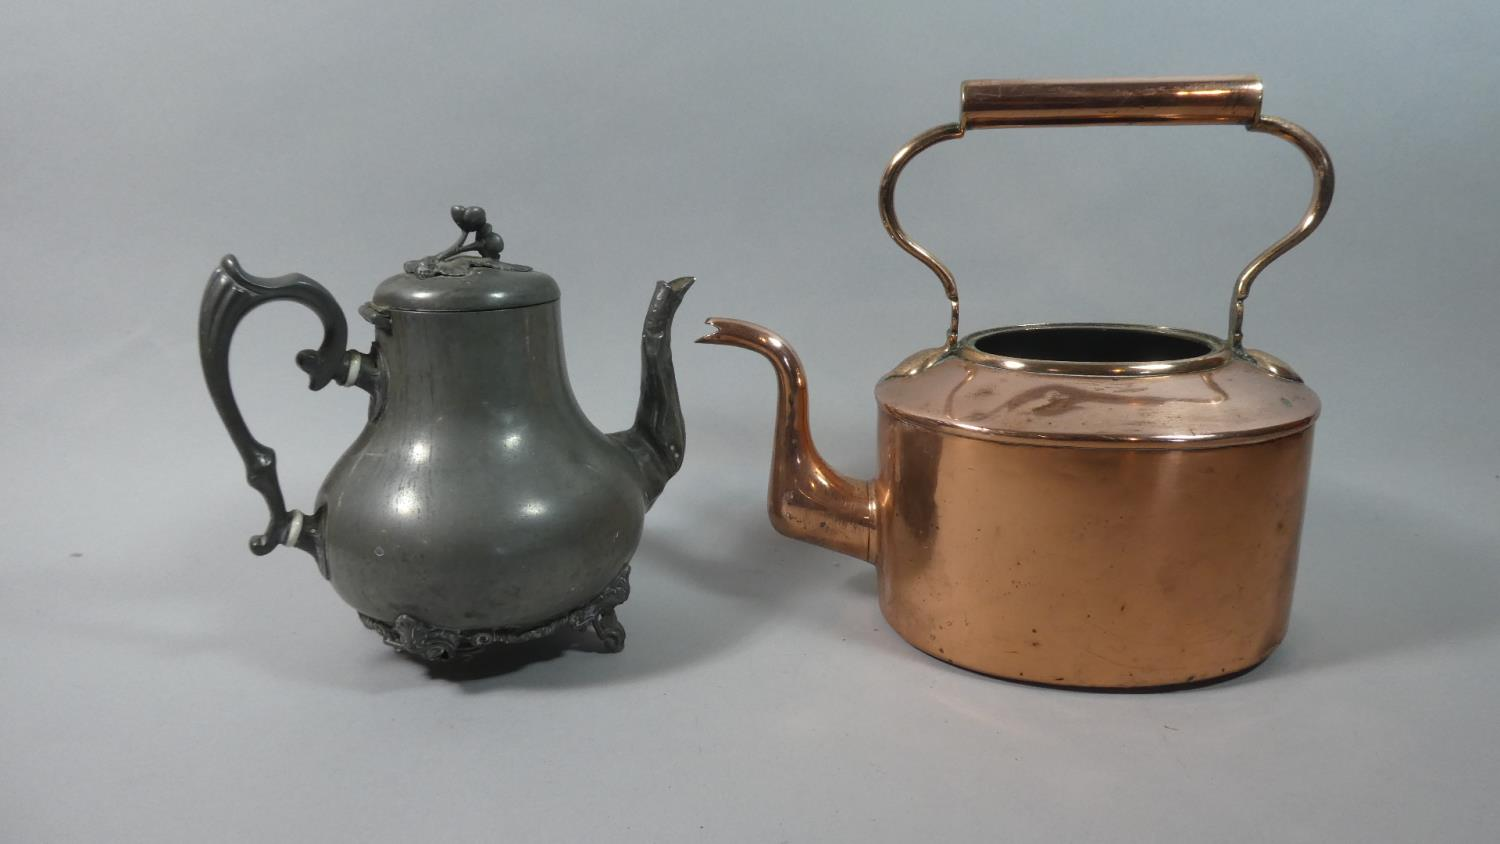 Lot 176 - A Copper Coaching Horn, Copper Kettle (no Lid) and a Pewter Teapot (Leg AF)